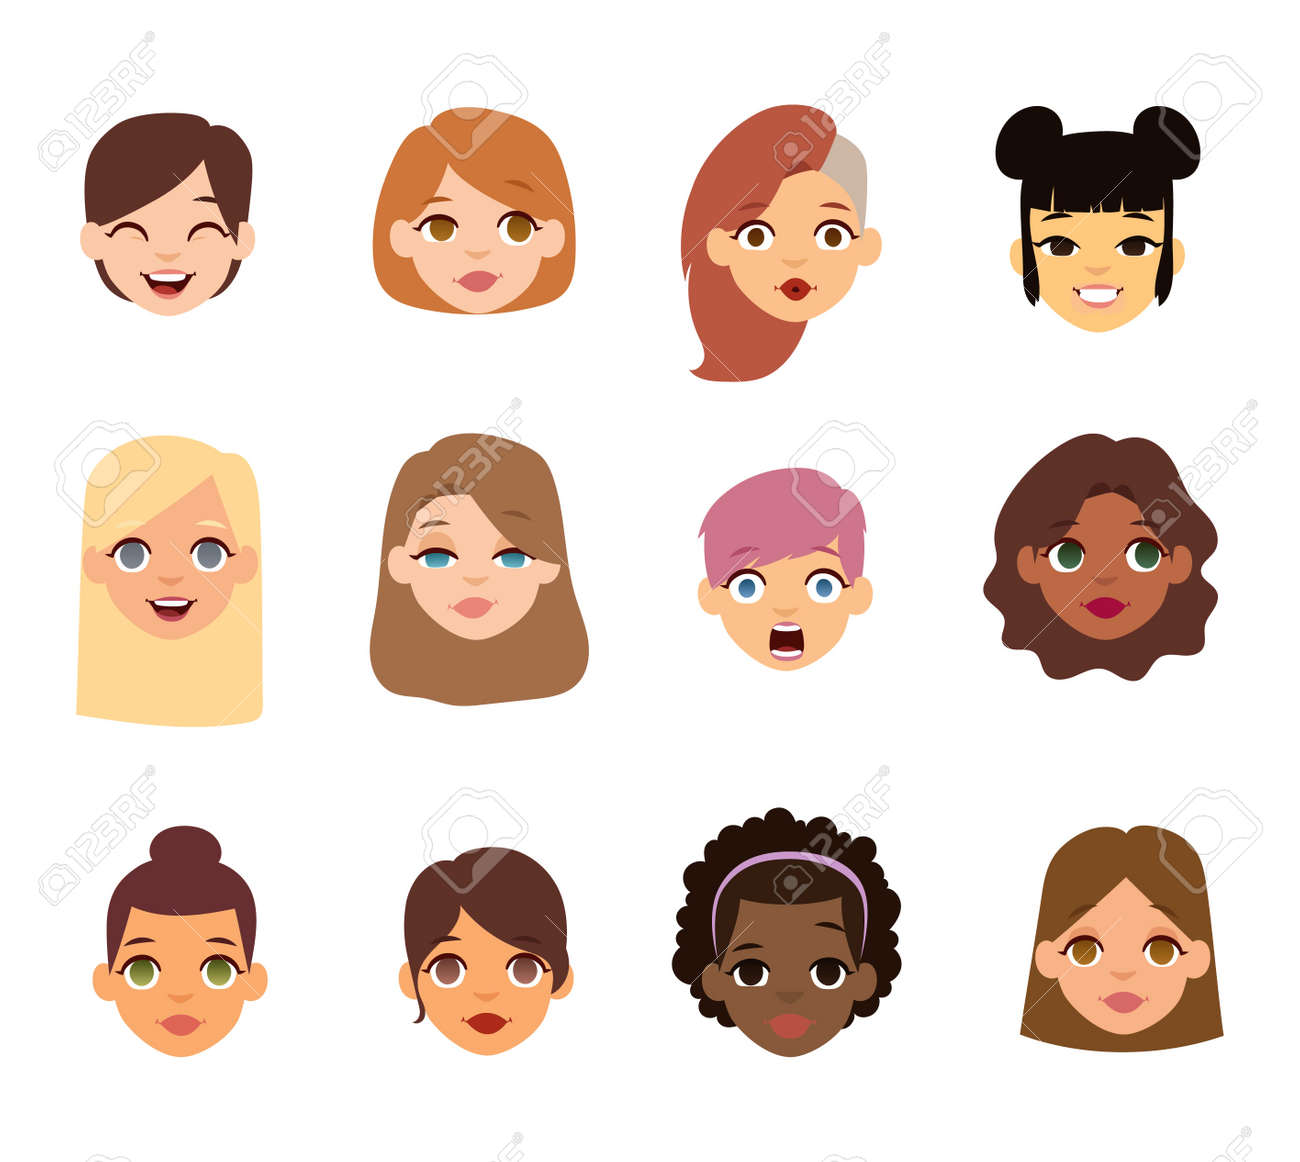 girl emotion faces cartoon vector illustration woman emoji face rh 123rf com cartoon woman face side view animated woman face